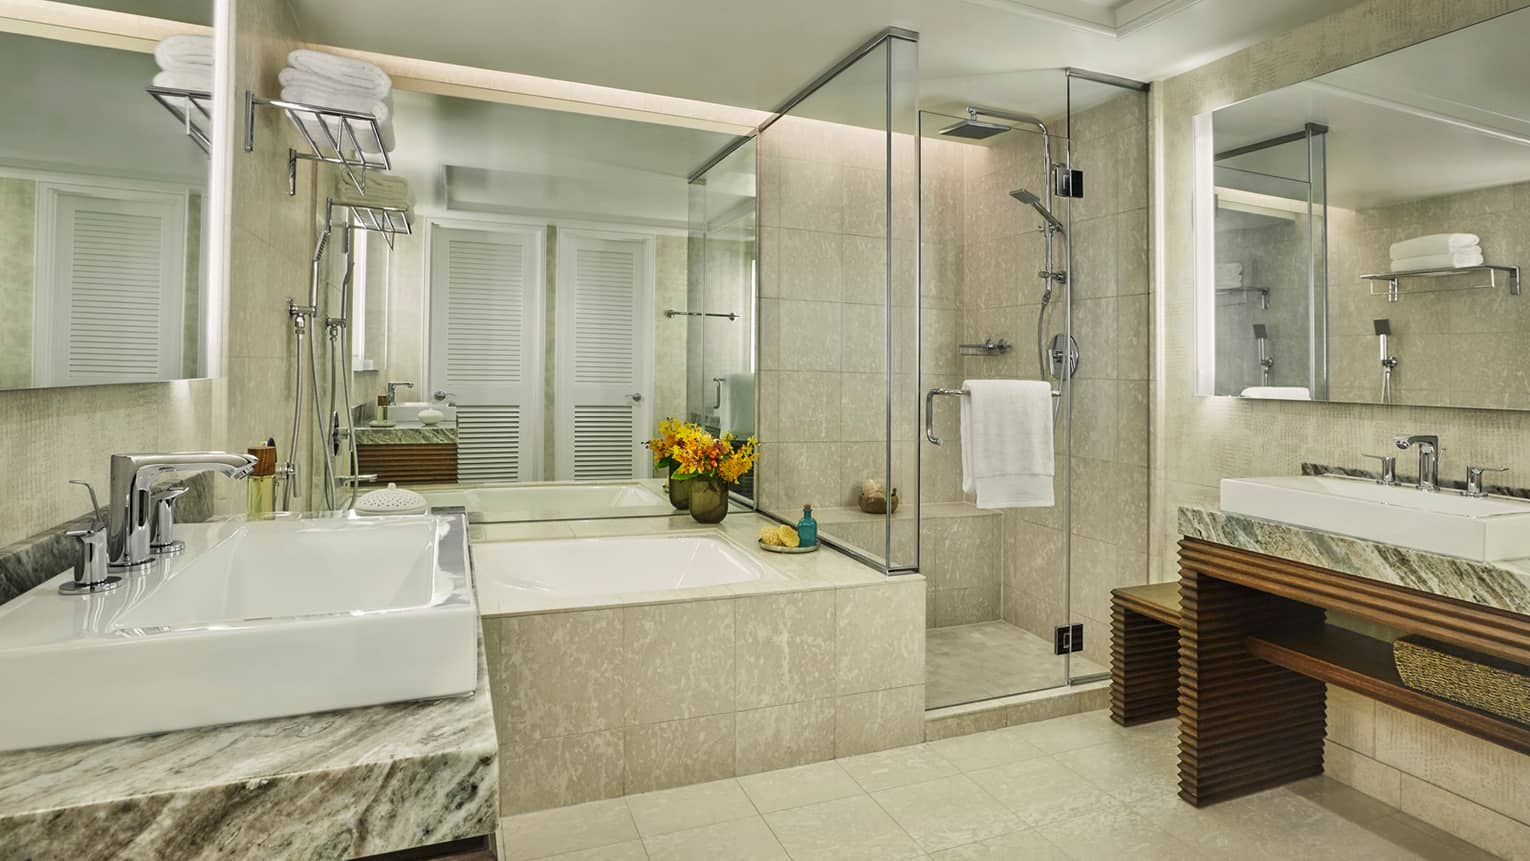 Oahu Oceanfront Room With A Jacuzzi Four Seasons Resort Ko Olina Home Images Jetted Bathtub Diagram Facebook Deluxe